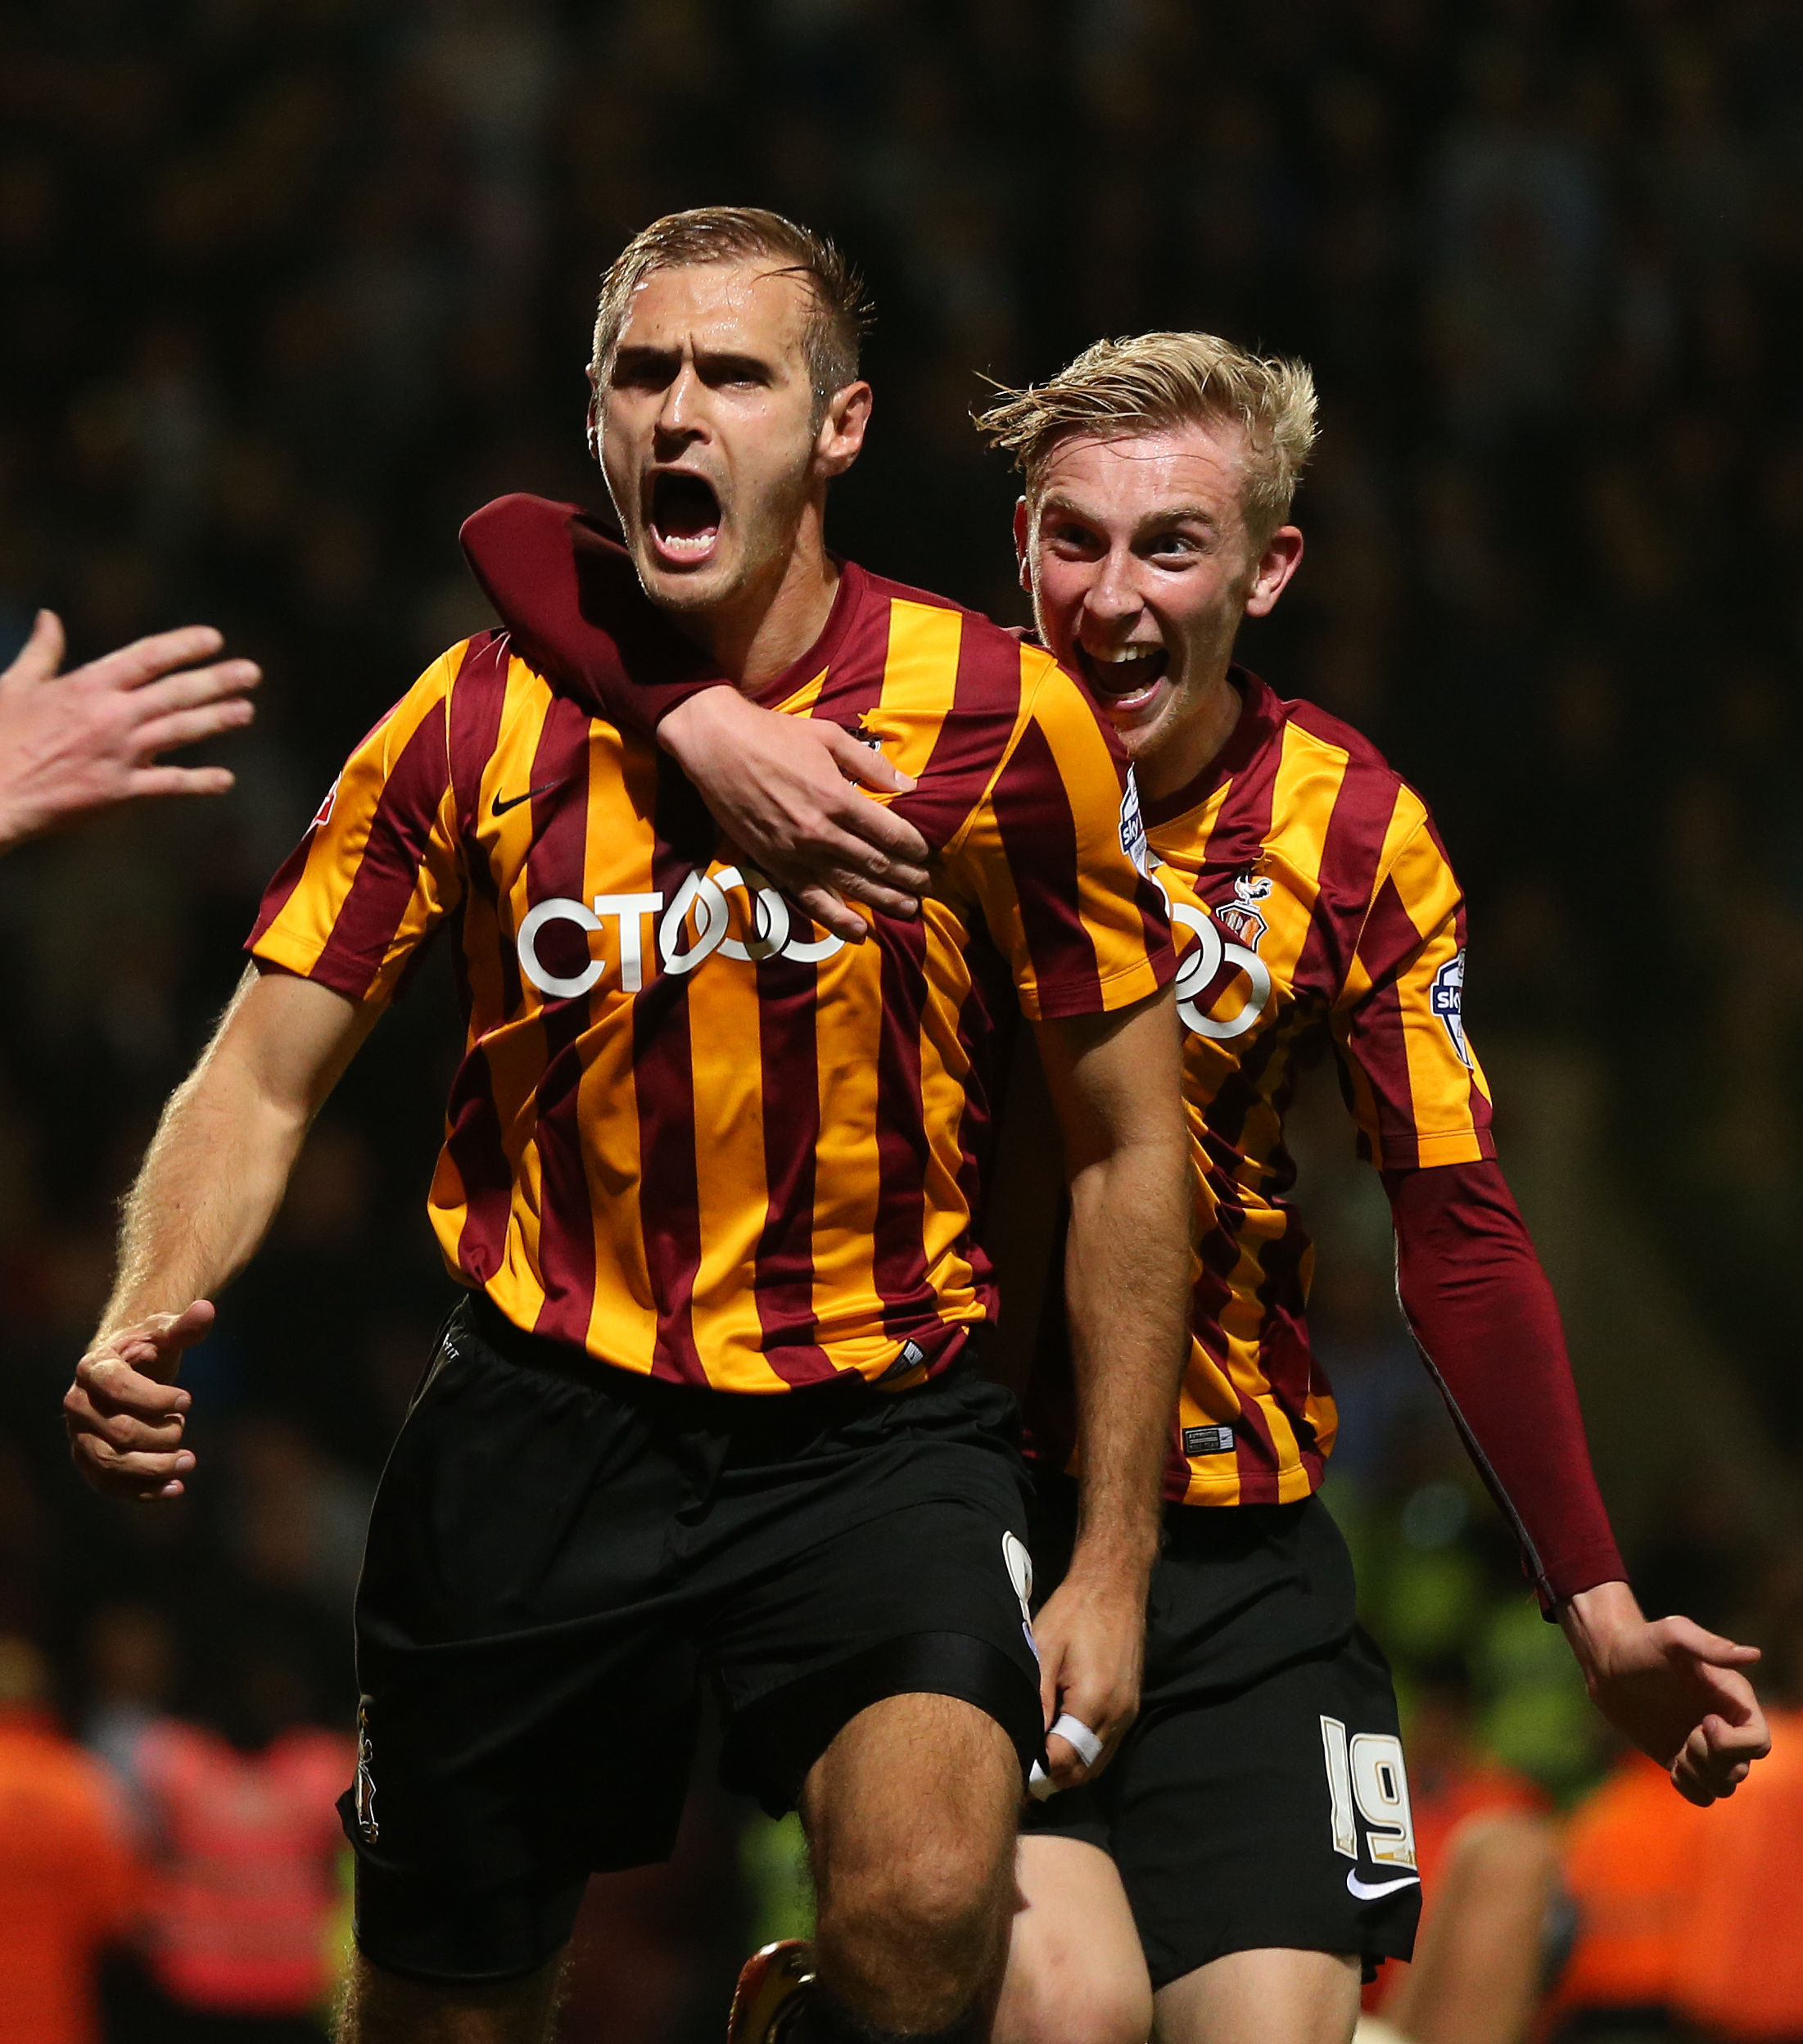 I am (not a) Legend: On-song Hanson proving top-ten hit for Bantams as he looks to rein in Windass